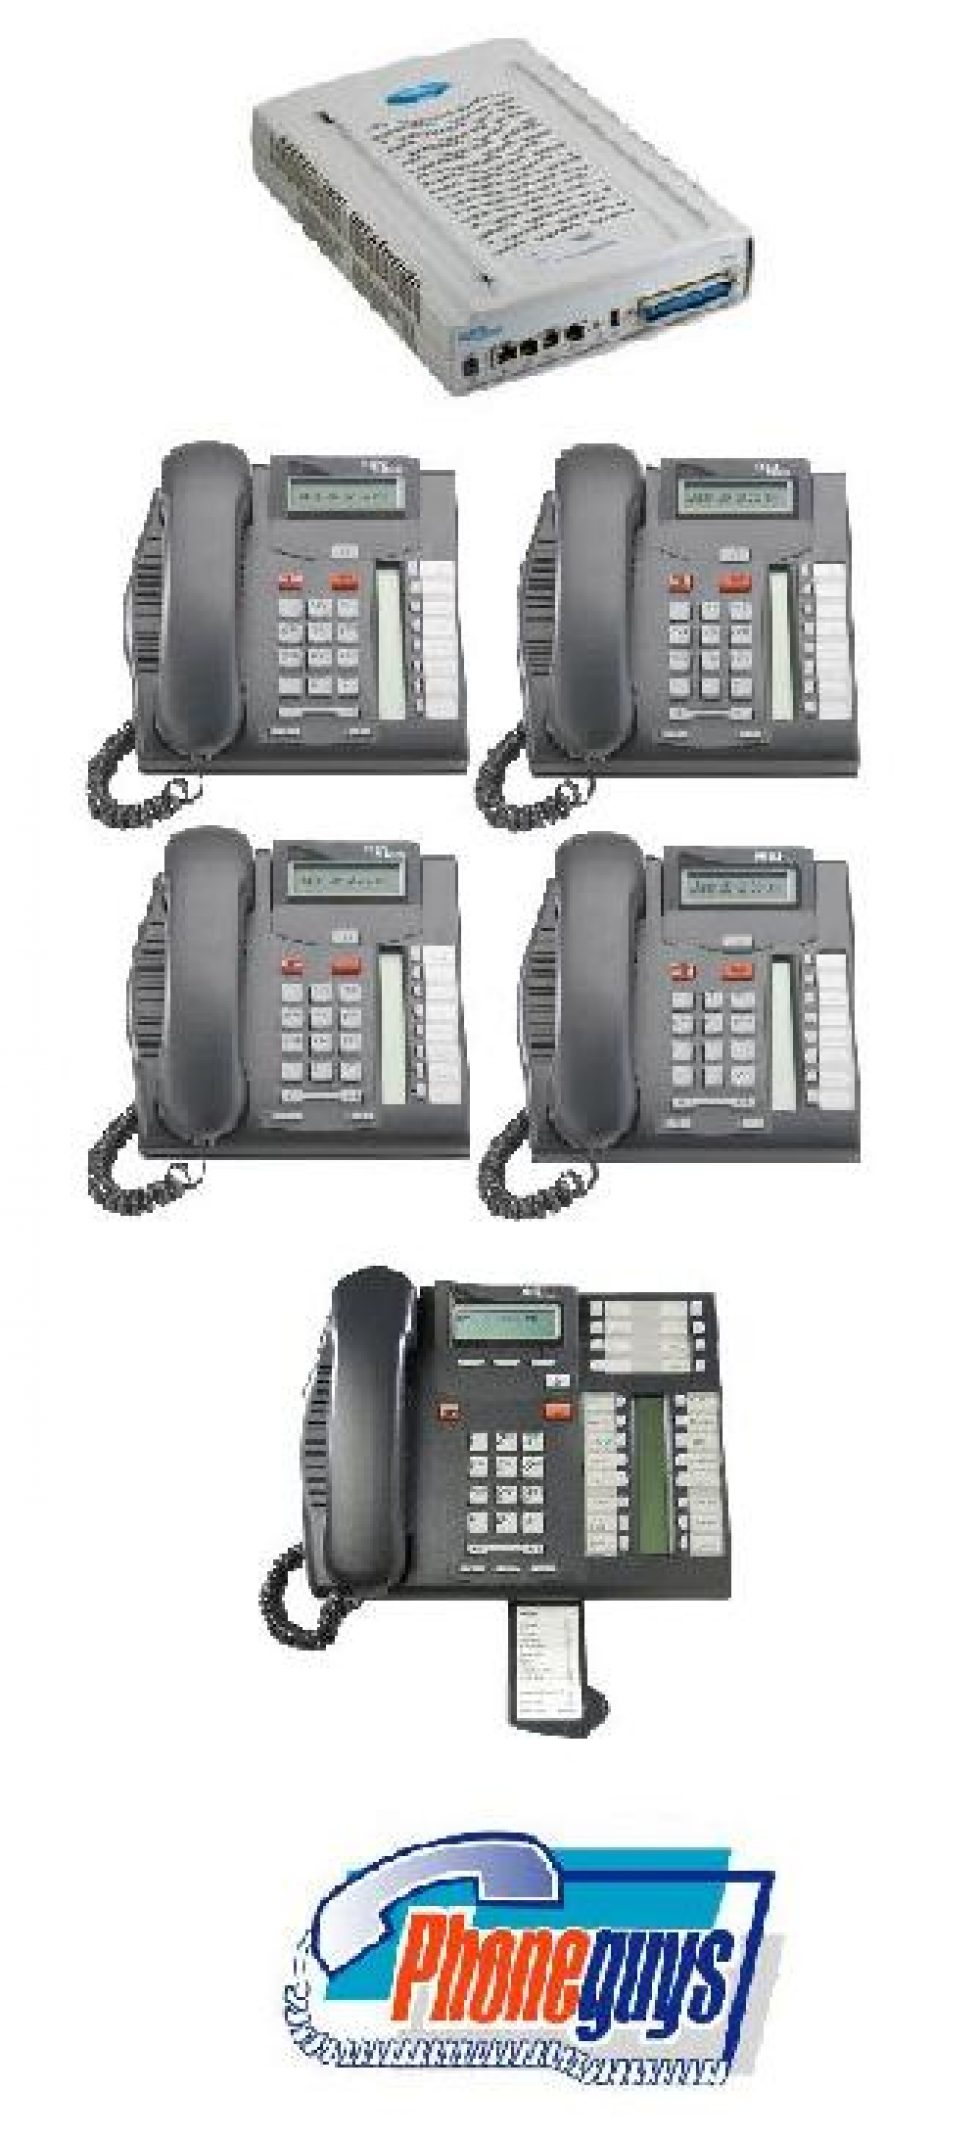 BCM50 VoIP Internet Phone System 1-T7316e 4-T7208 Phones & Voice Mail